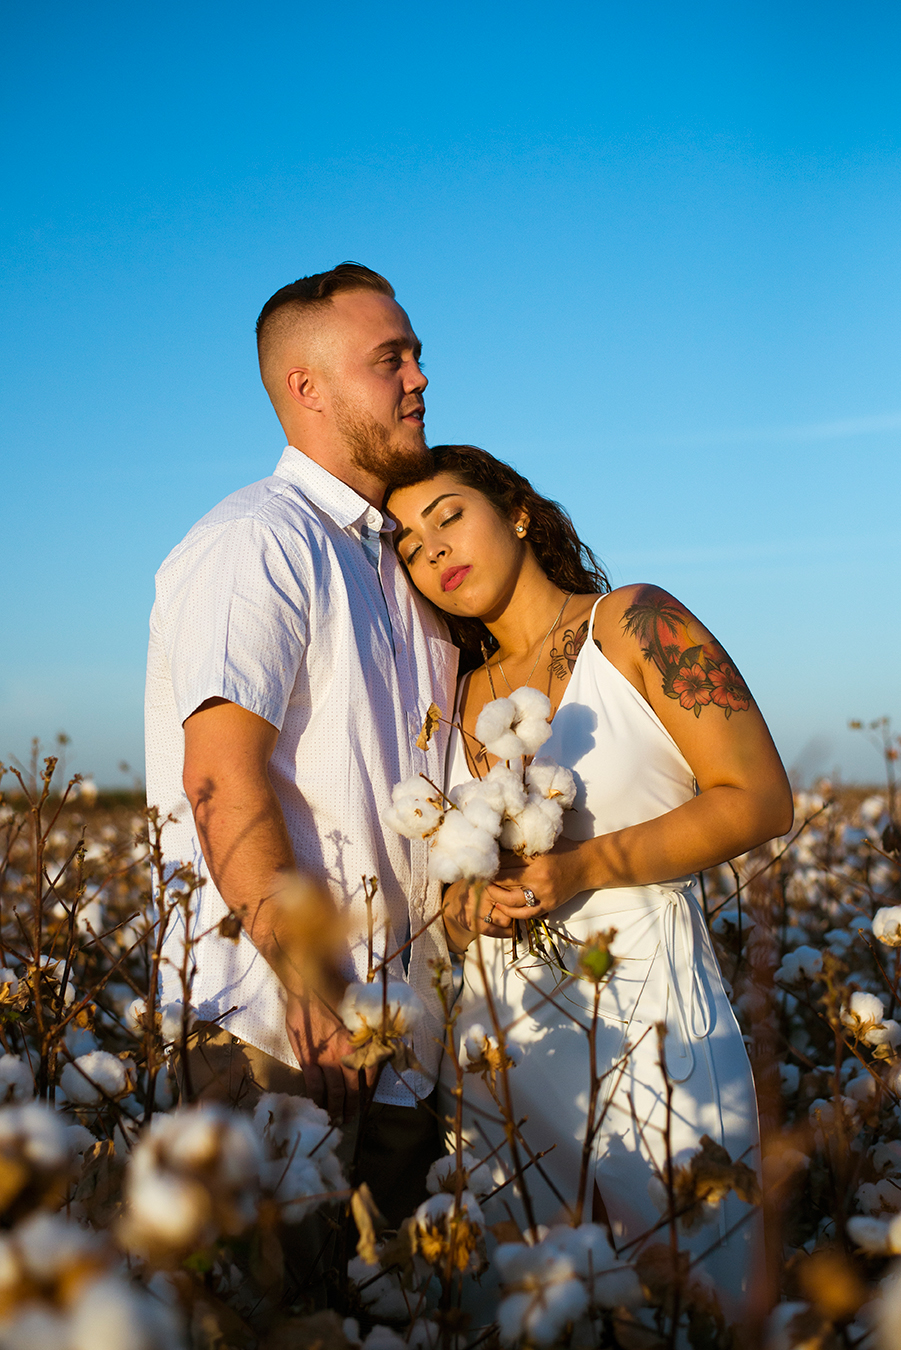 Mini photo session in a California with a couple celebrating their one year wedding anniversary. Photographed by Lillian Short in September 2017 south of Fresno.